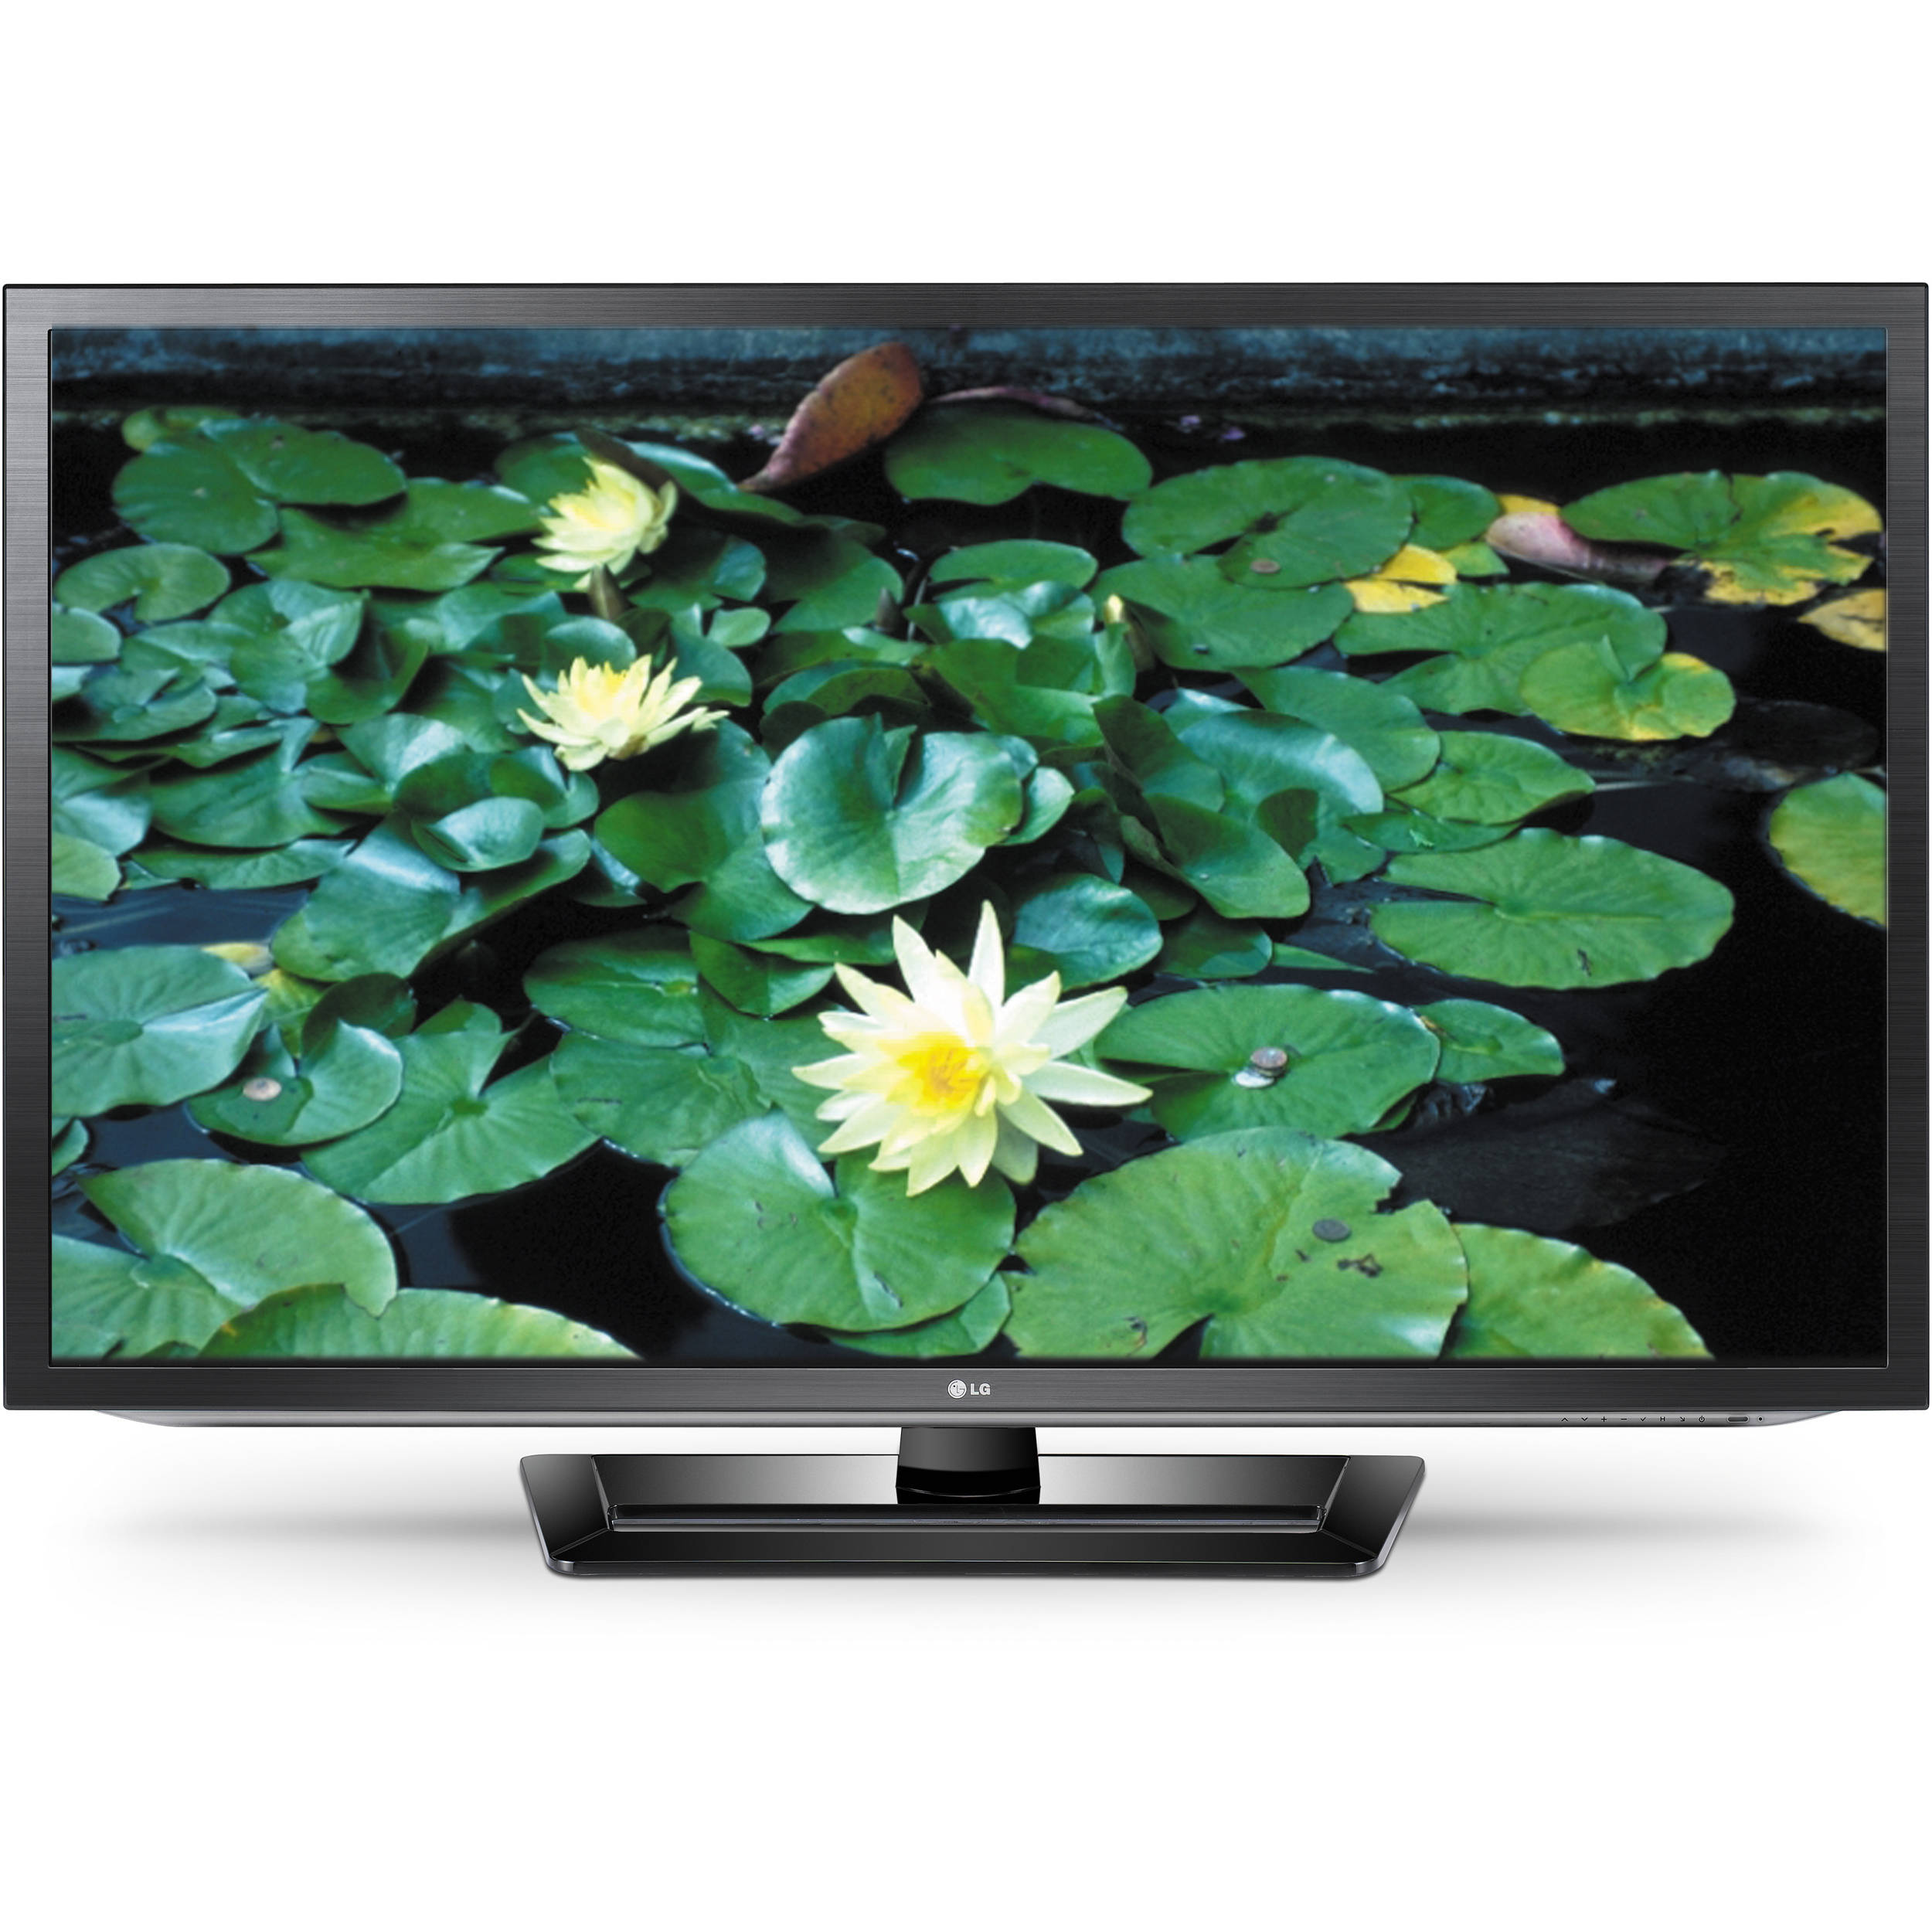 LG 65LM6200 TV DRIVERS FOR WINDOWS 7